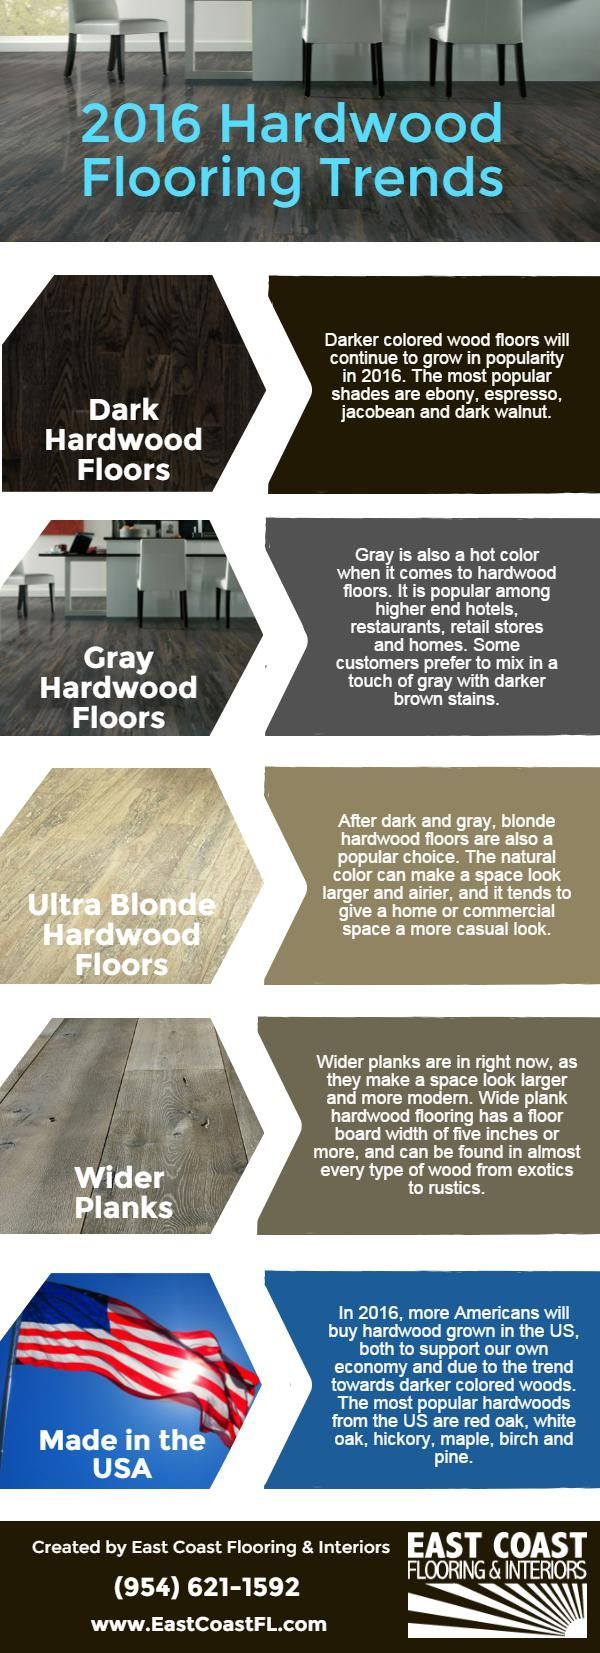 Hardwood Flooring Manufacturers In north Carolina Of 21 Best Bamboo Flooring Images On Pinterest Floors Flooring and Inside 2016 Hardwood Flooring Trends Infographic From East Coast Flooring A Premier south Florida Flooring Installation Company